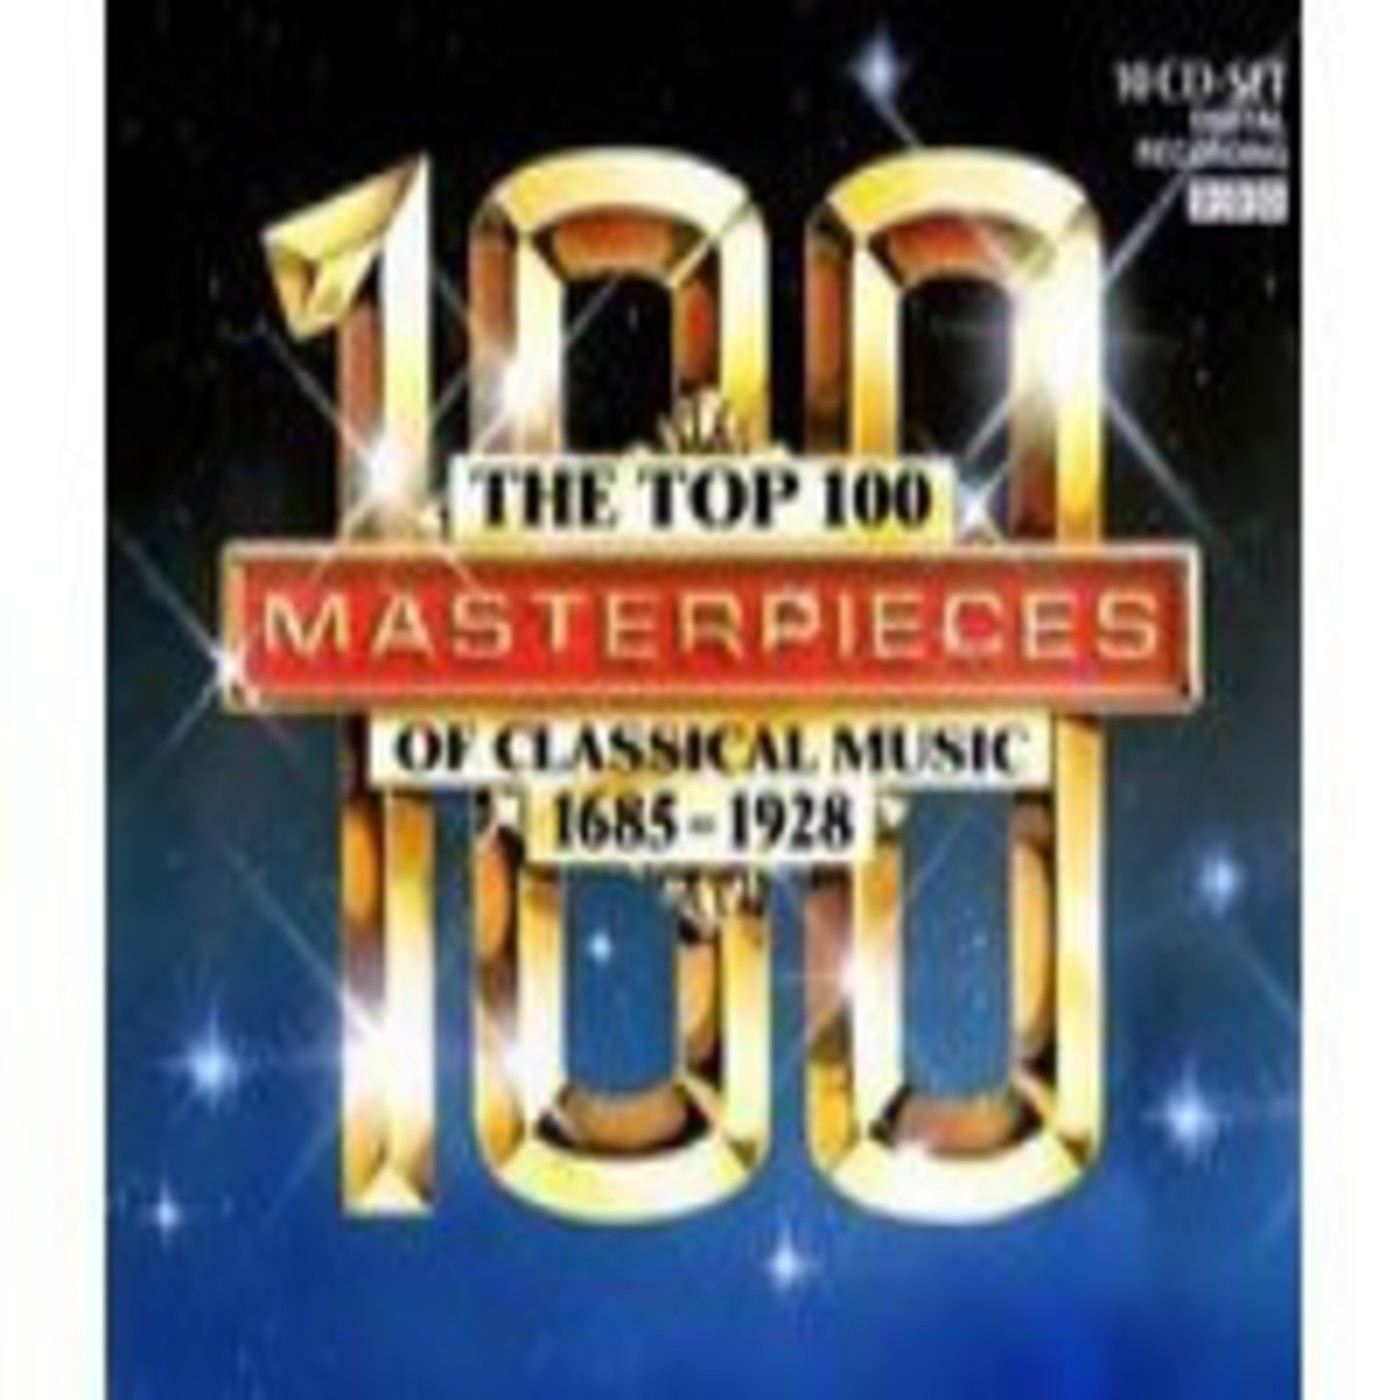 the top 100 masterpieces of classical music mega